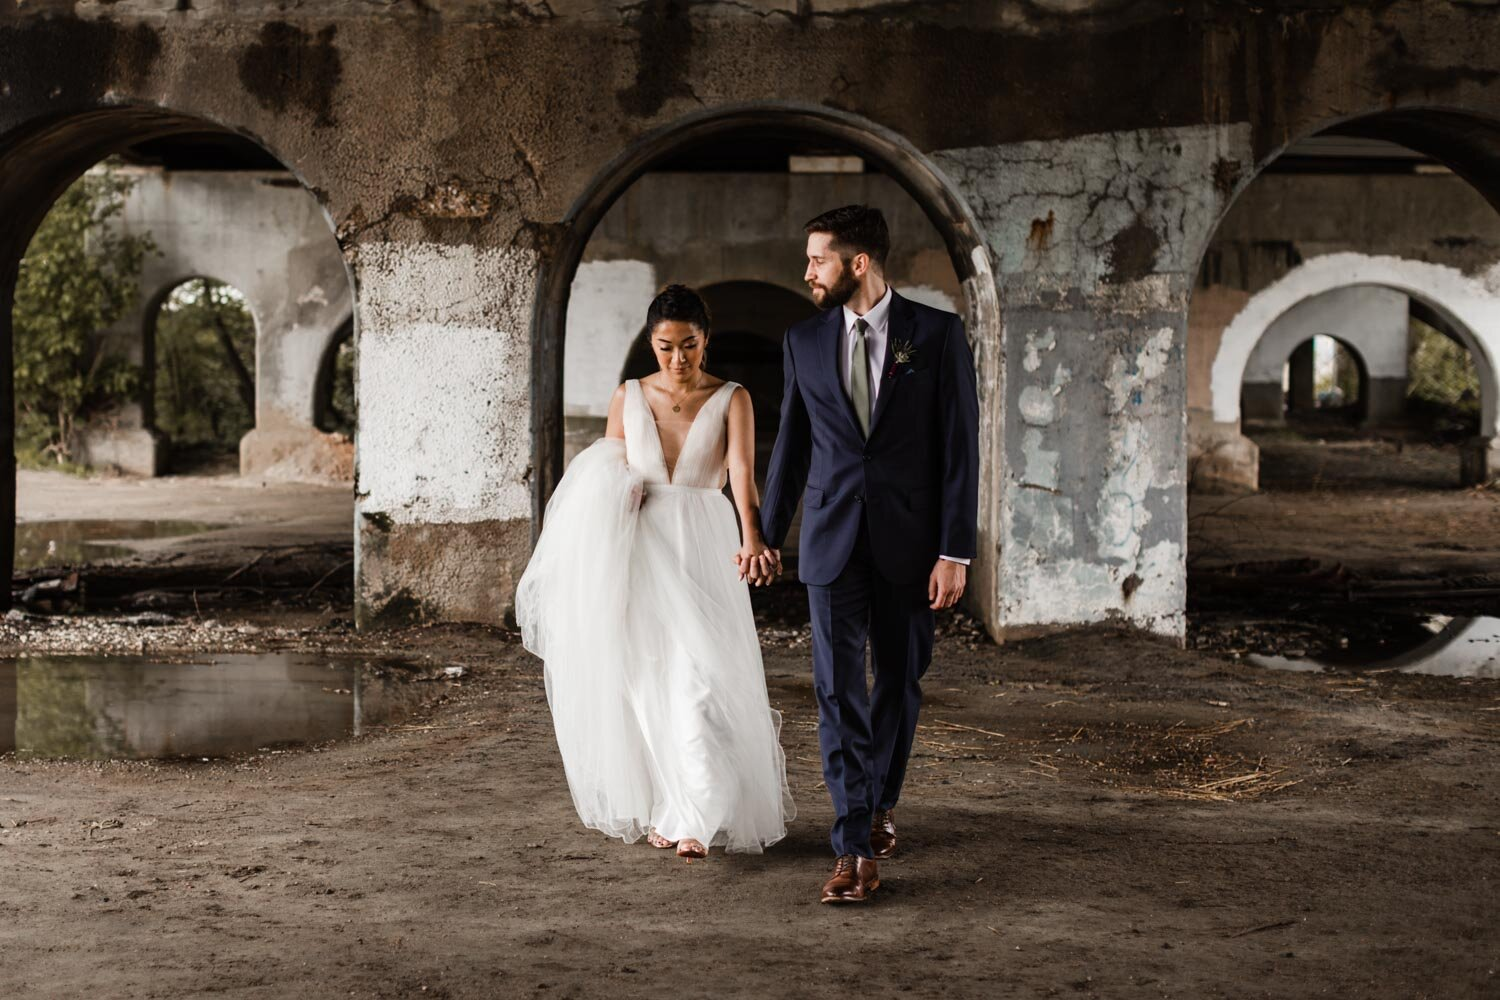 Mt Washington Mill Dye House industrial Baltimore wedding by Barbara O Photography-146.jpg